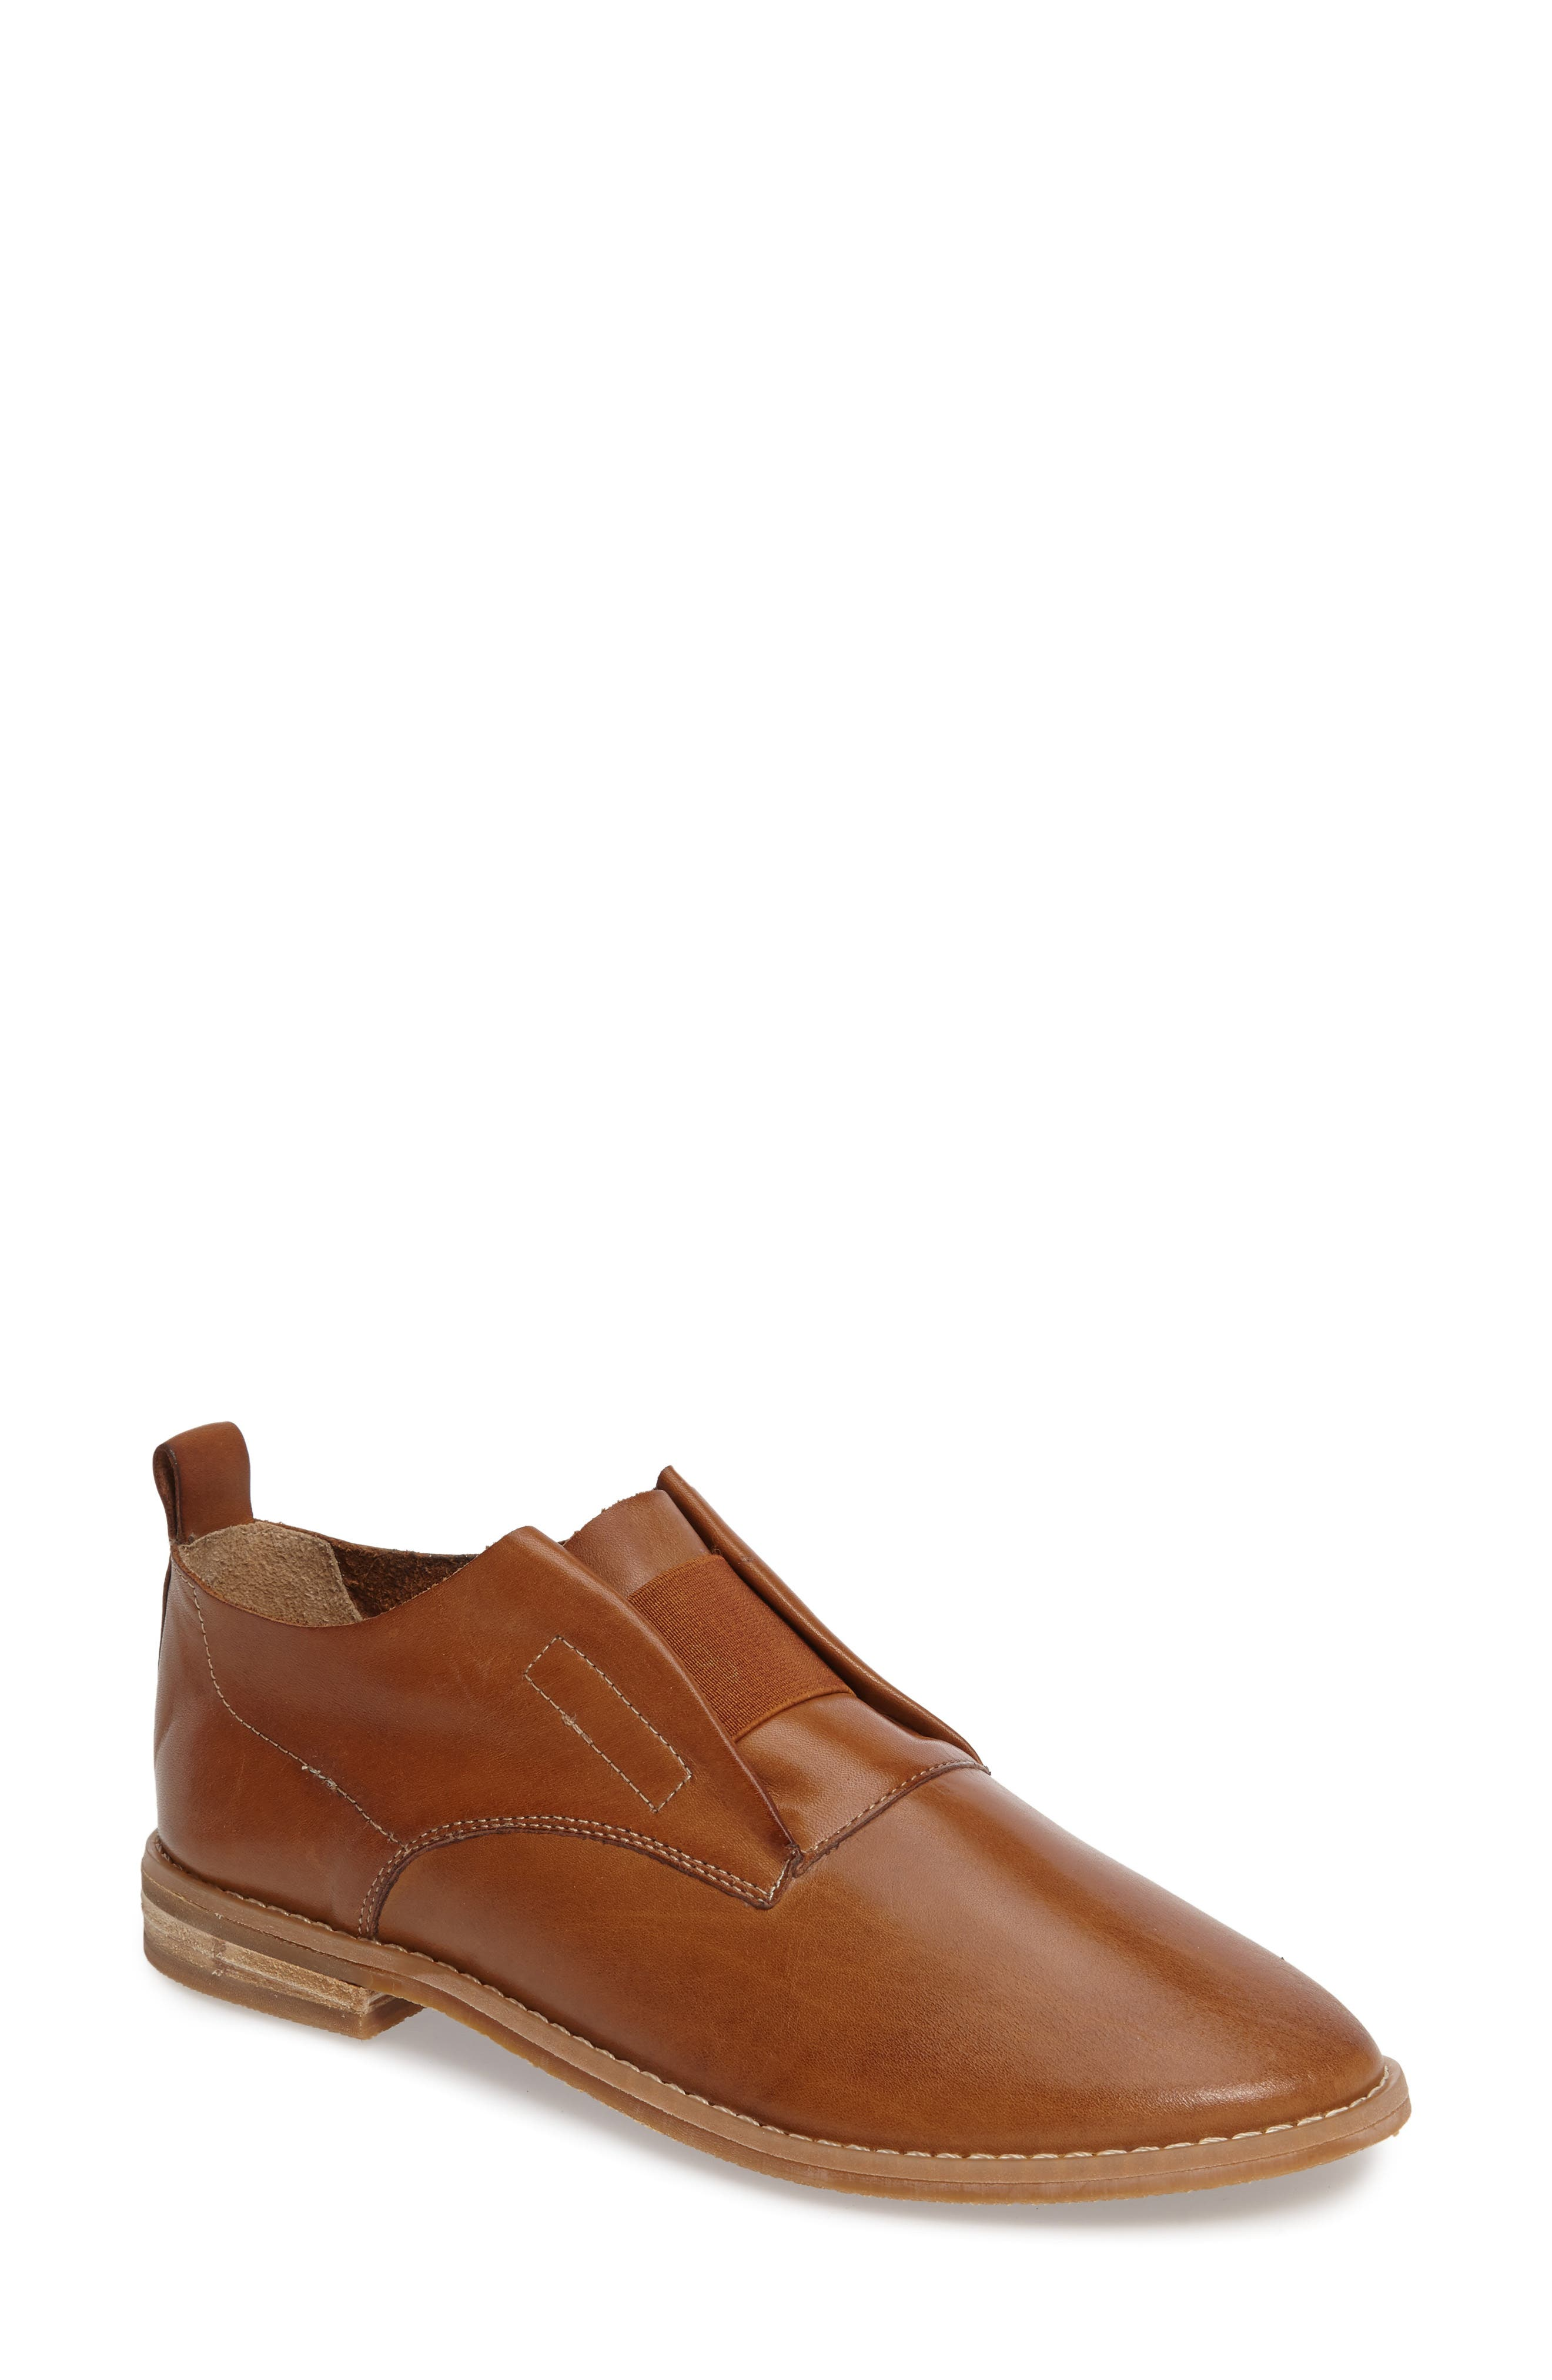 Alternate Image 1 Selected - Hush Puppies® Annerly Clever Flat (Women)